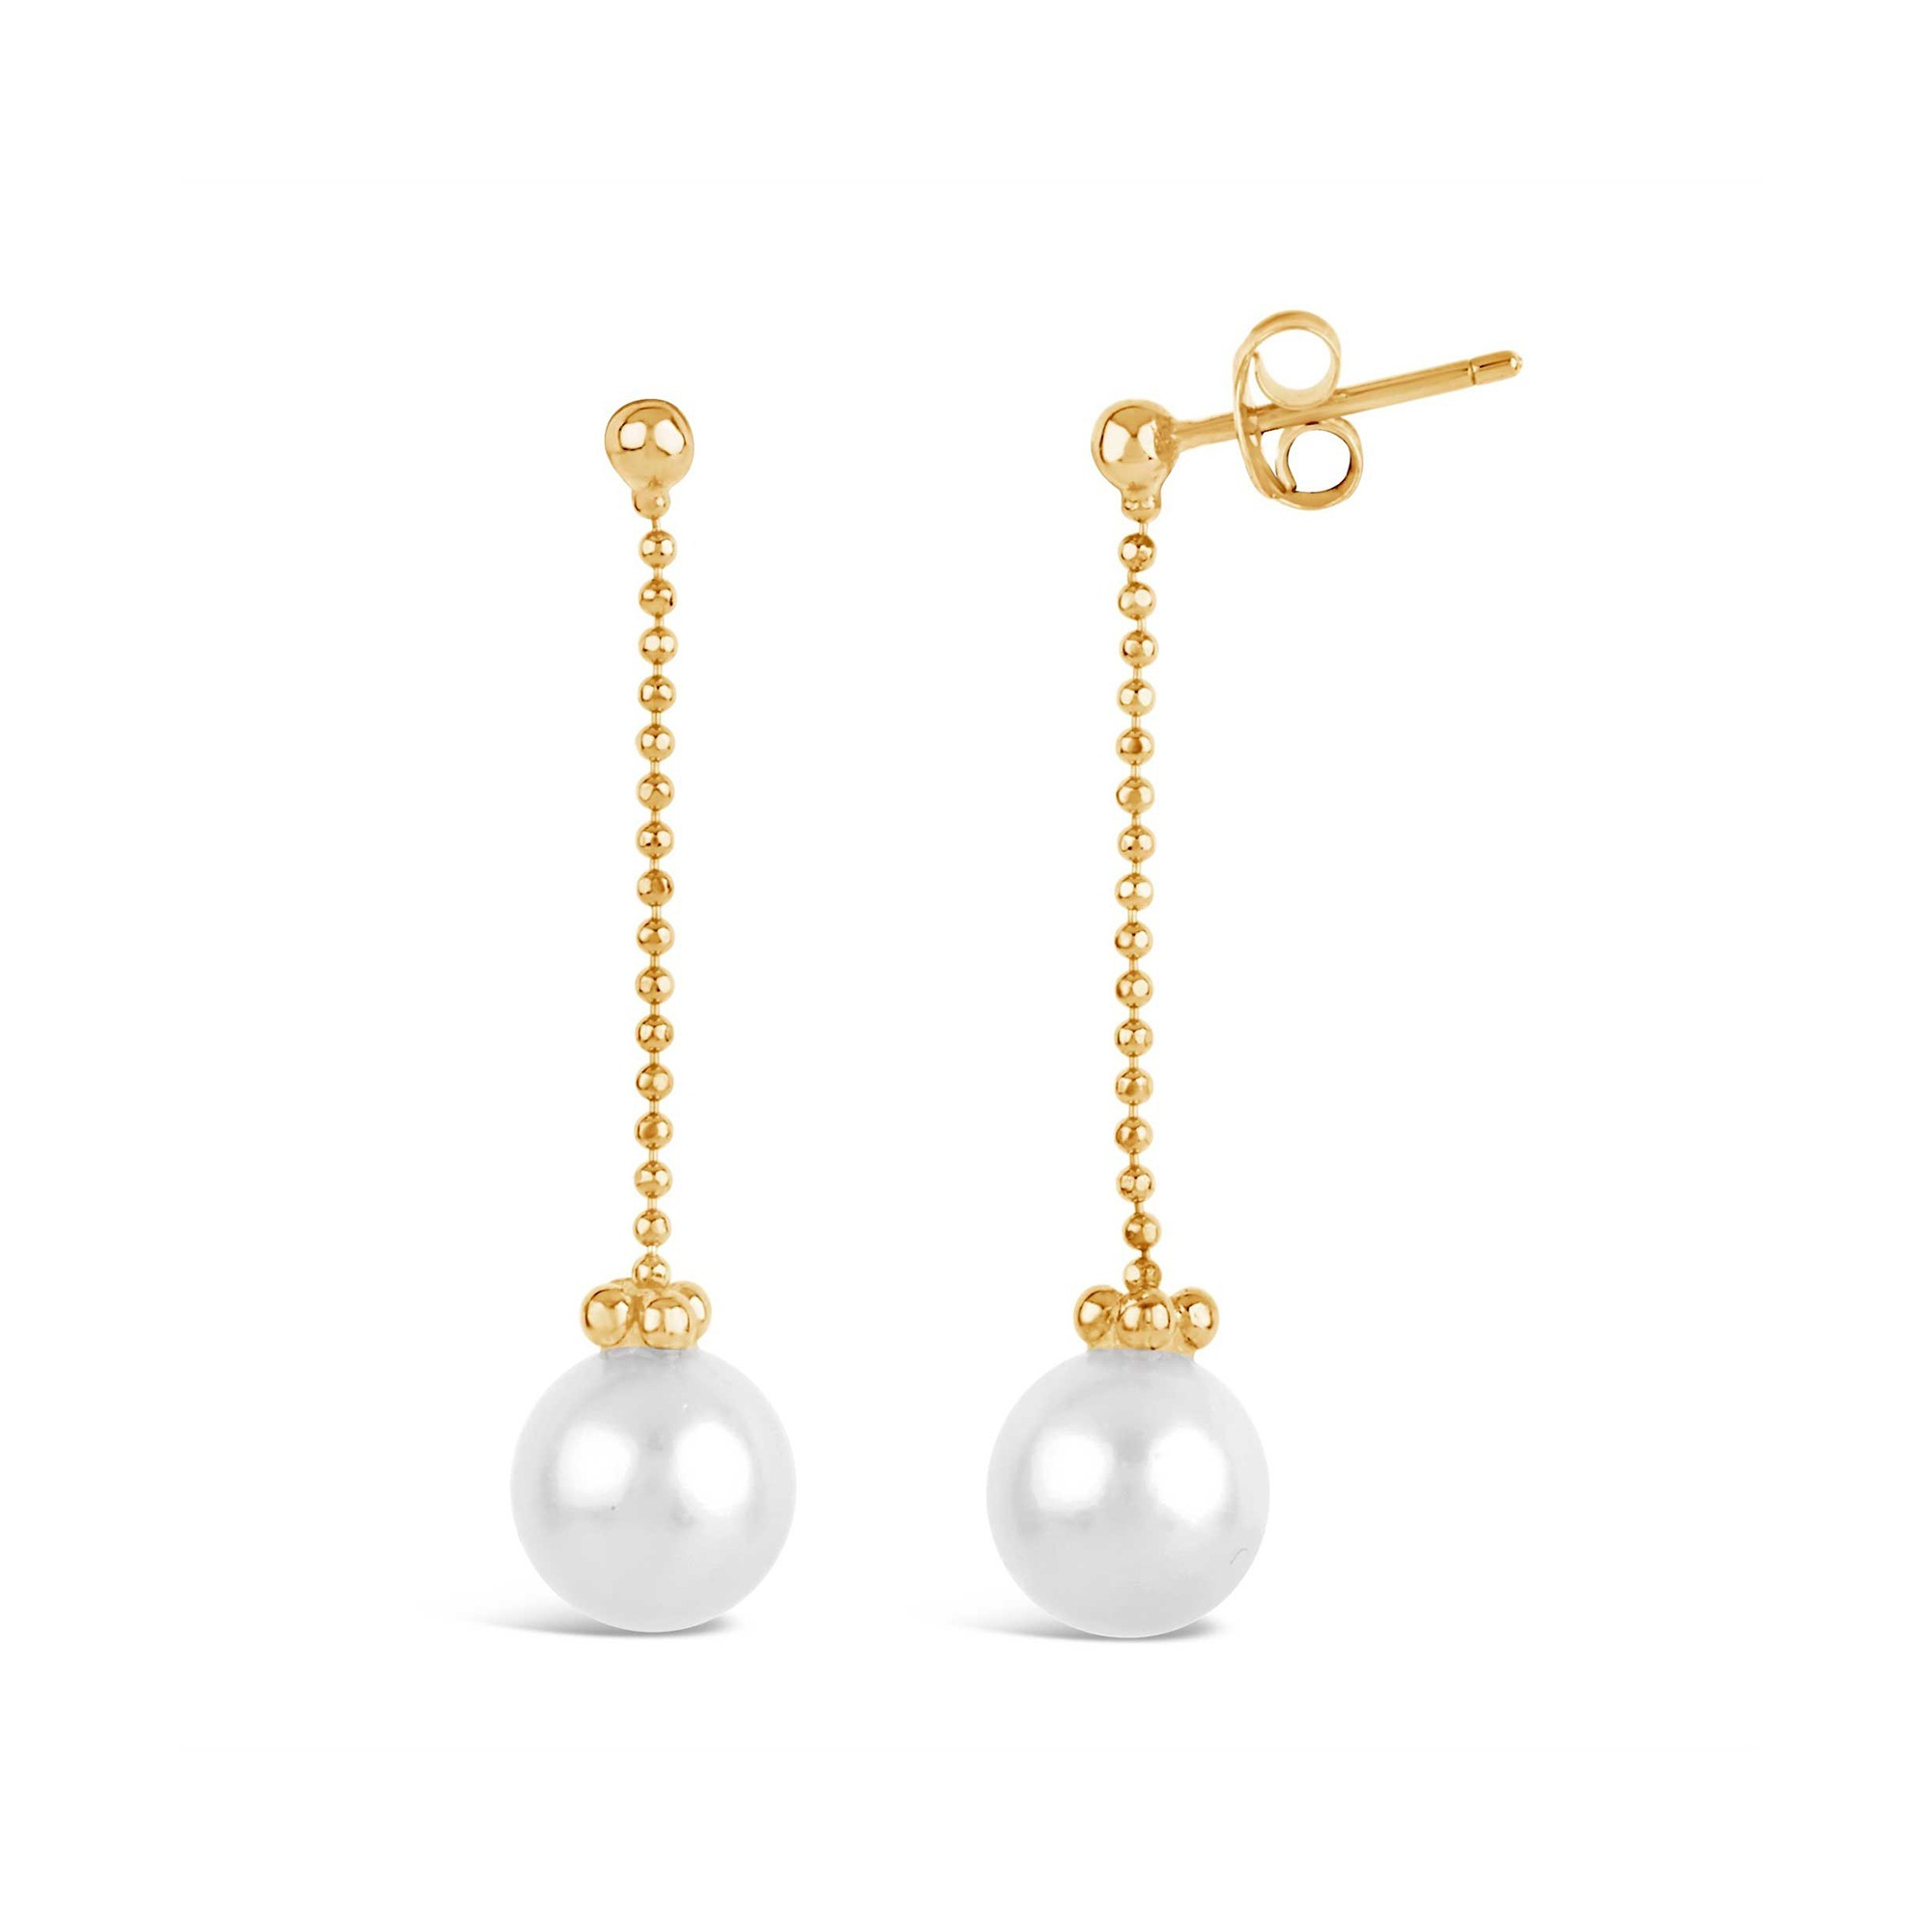 DINNY HALL GOLD PEARL CHAIN DROP EARRING